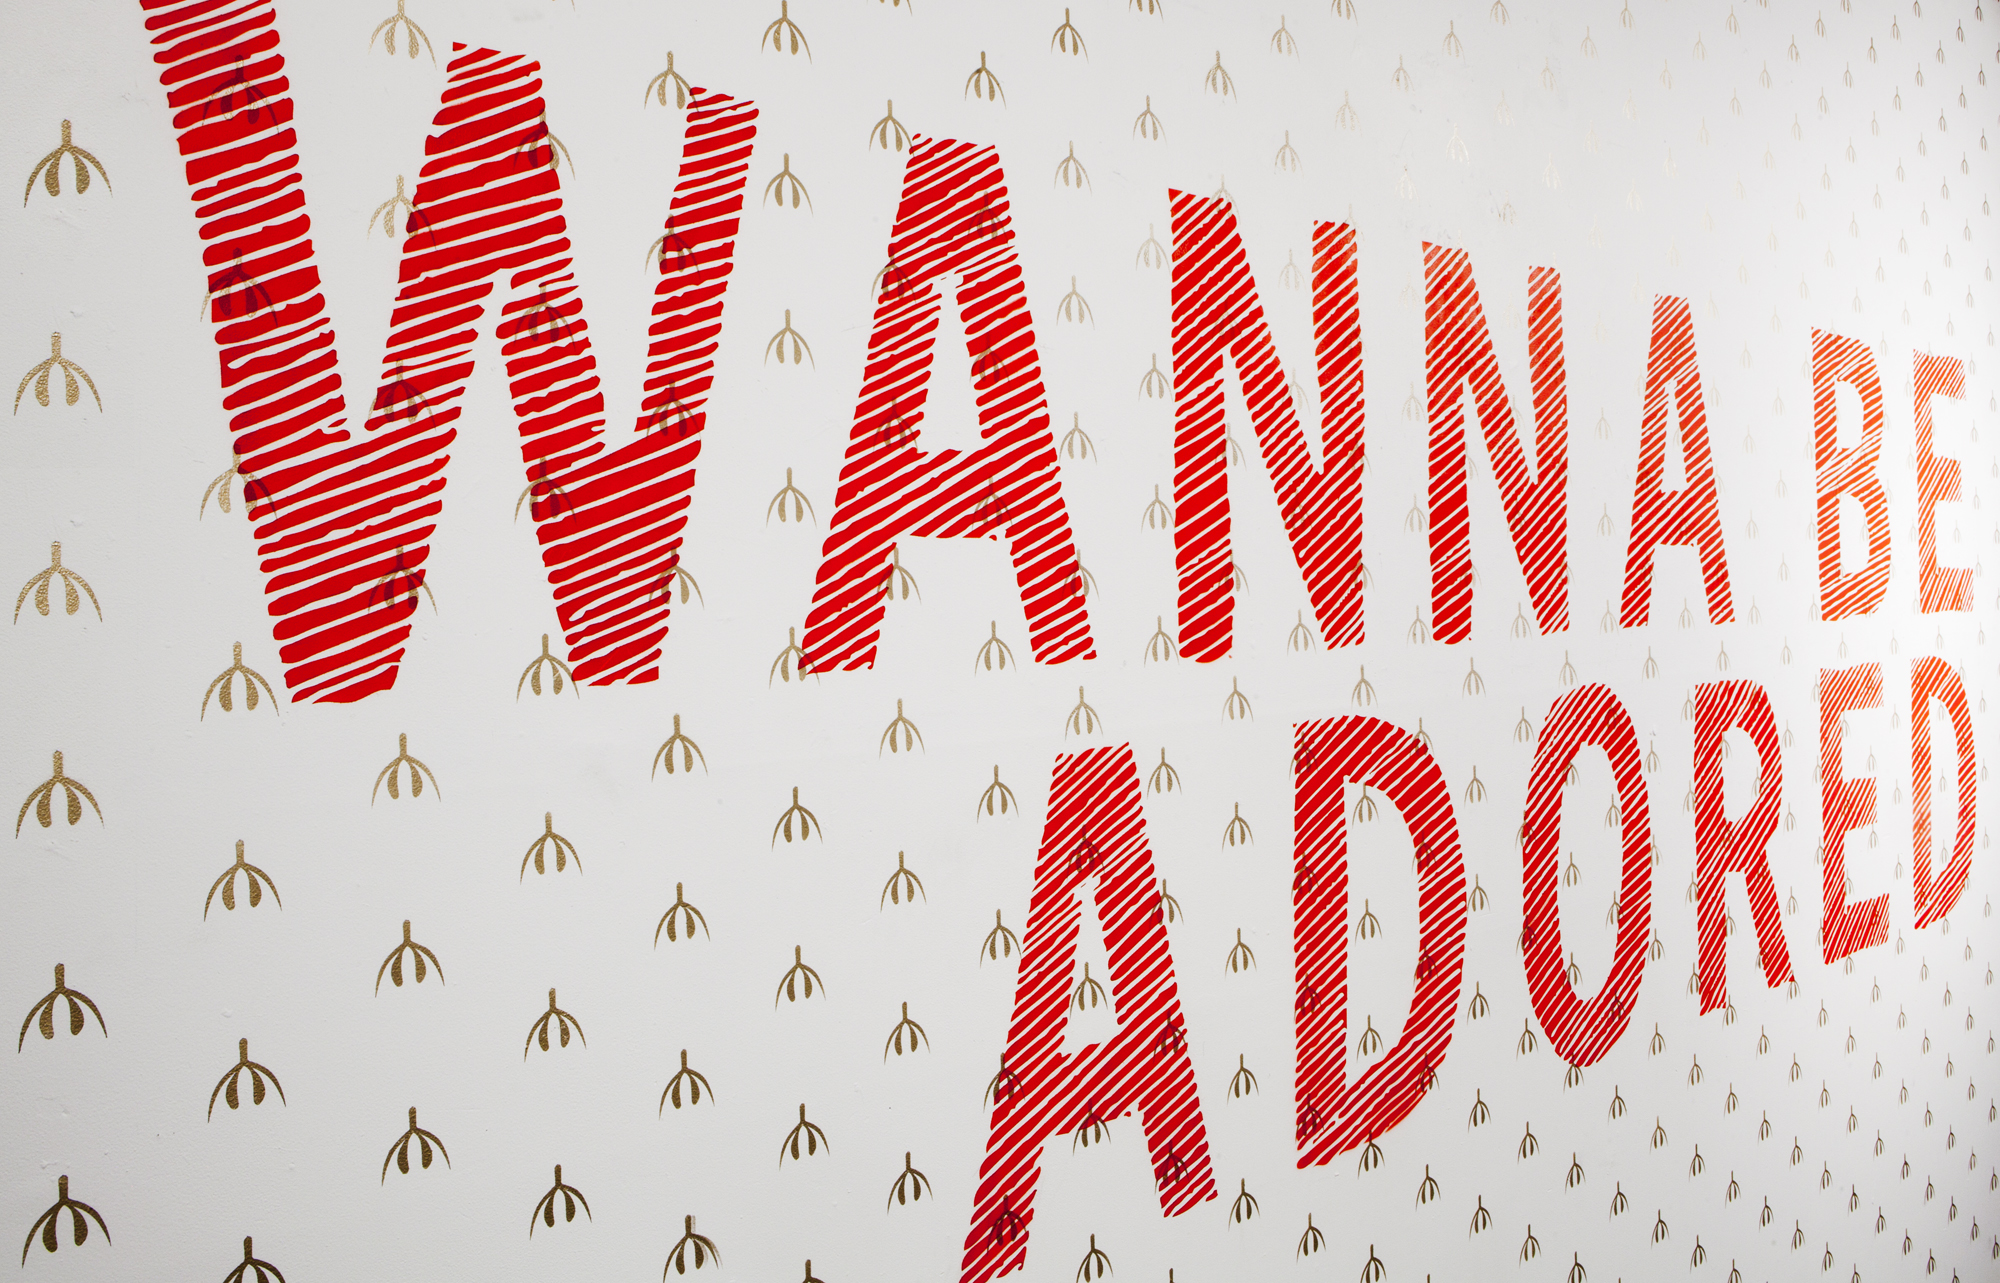 Site specific installation at  Definitely Superior Gallery   I WANNA BE ADORED, 2014  Gold, Red Acrylic 23 x 9 feet